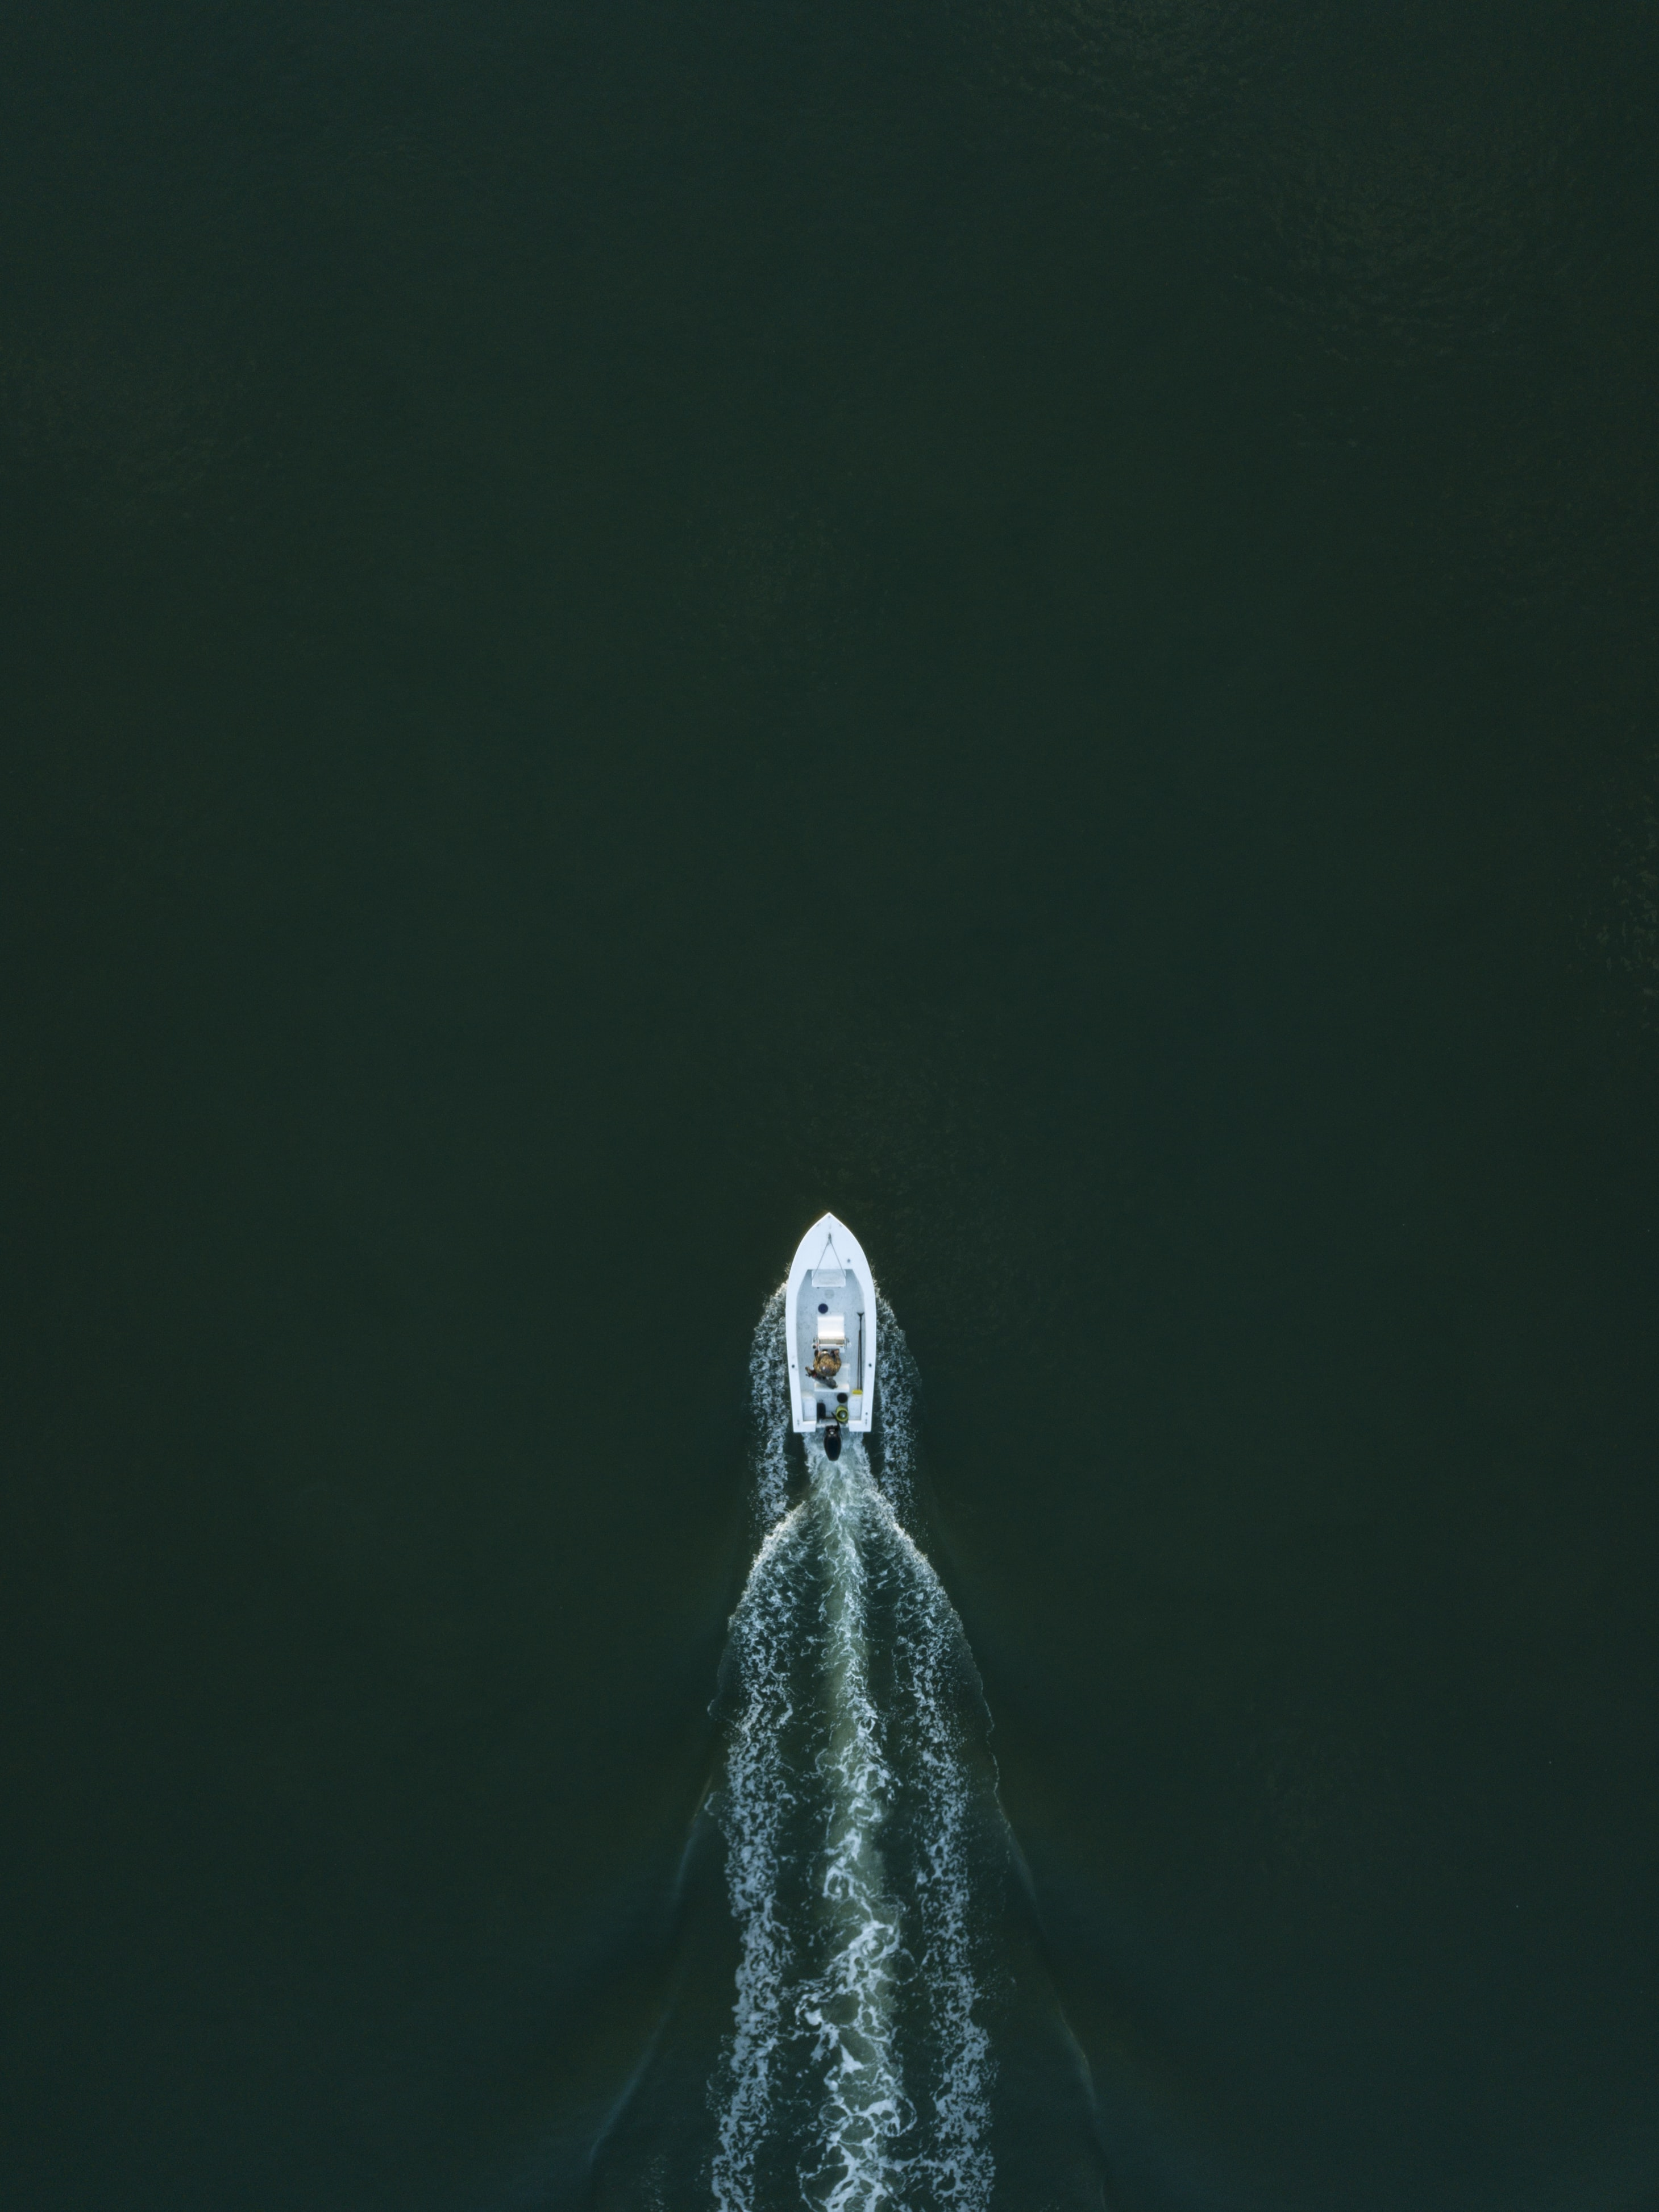 white powerboat at body of water leaving water trail